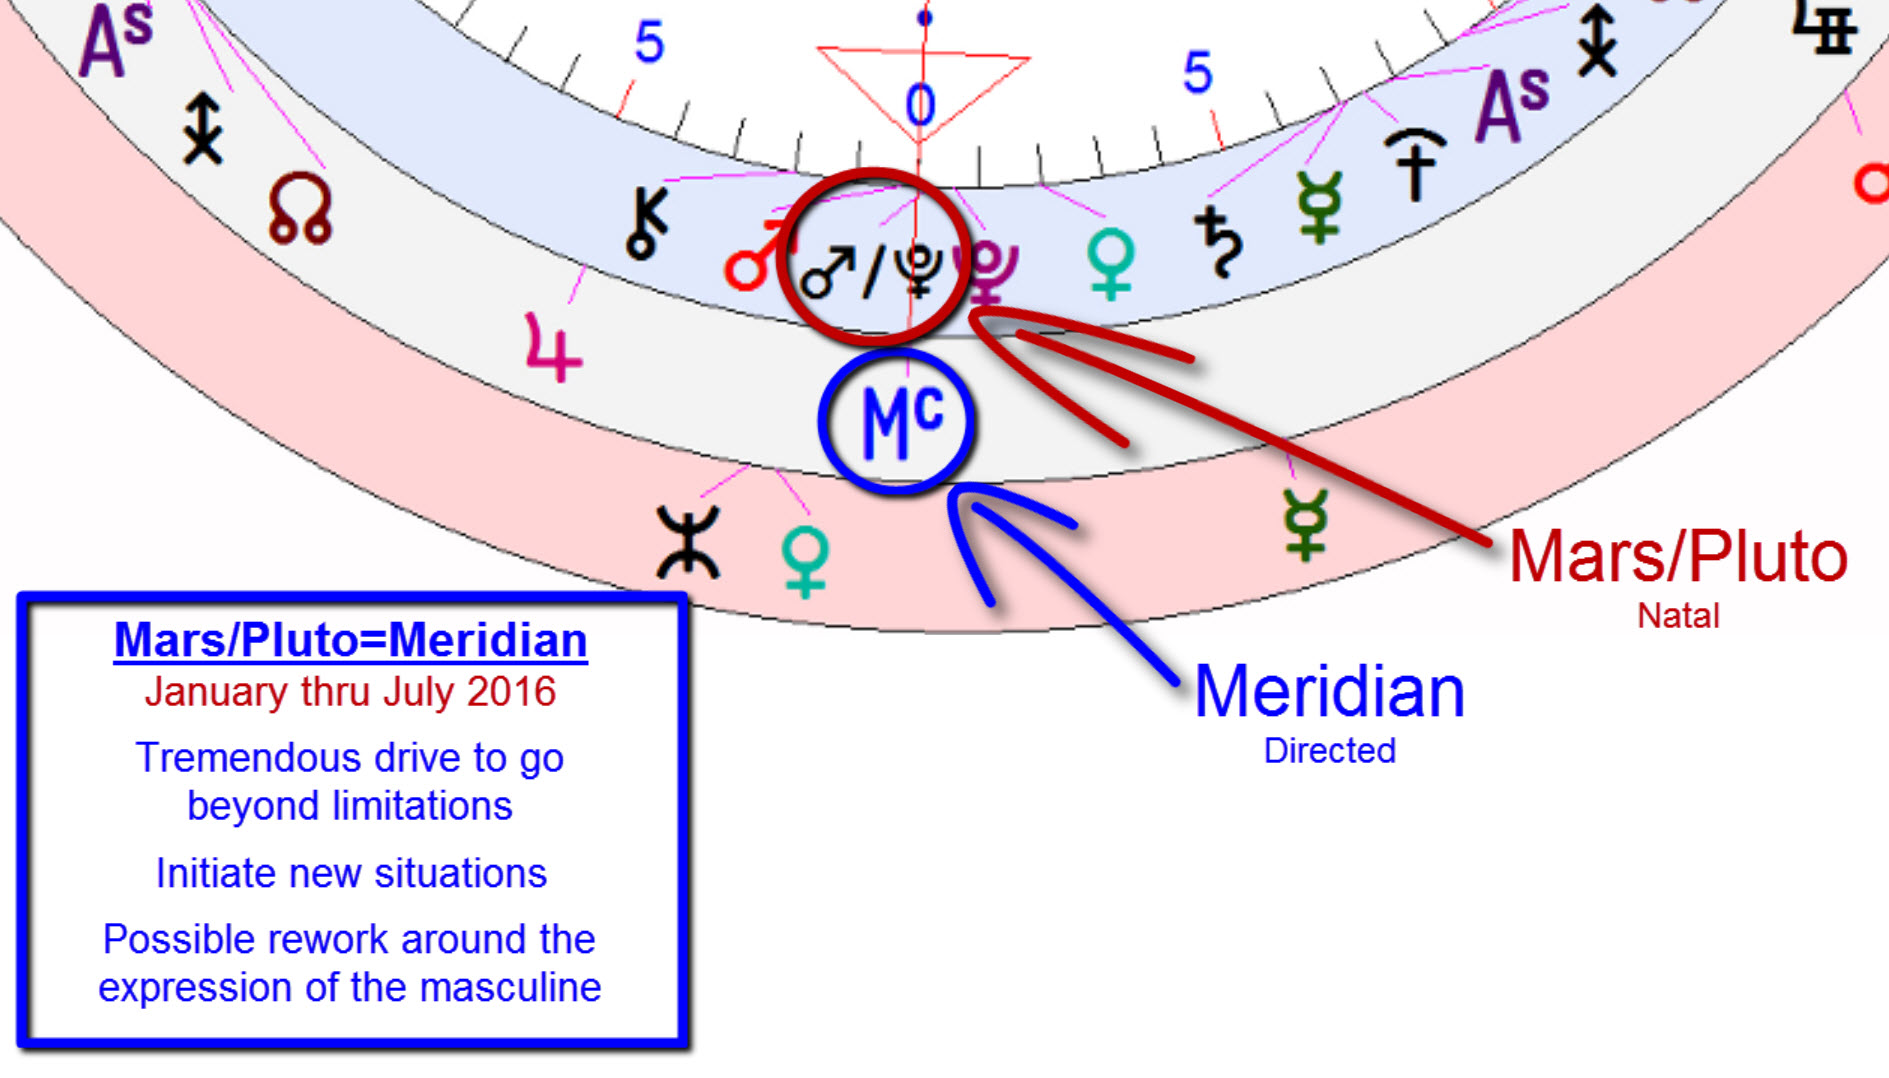 democratic convention ~ july 25-28 ~ mars/pluto=meridian direction ~hillary clinton